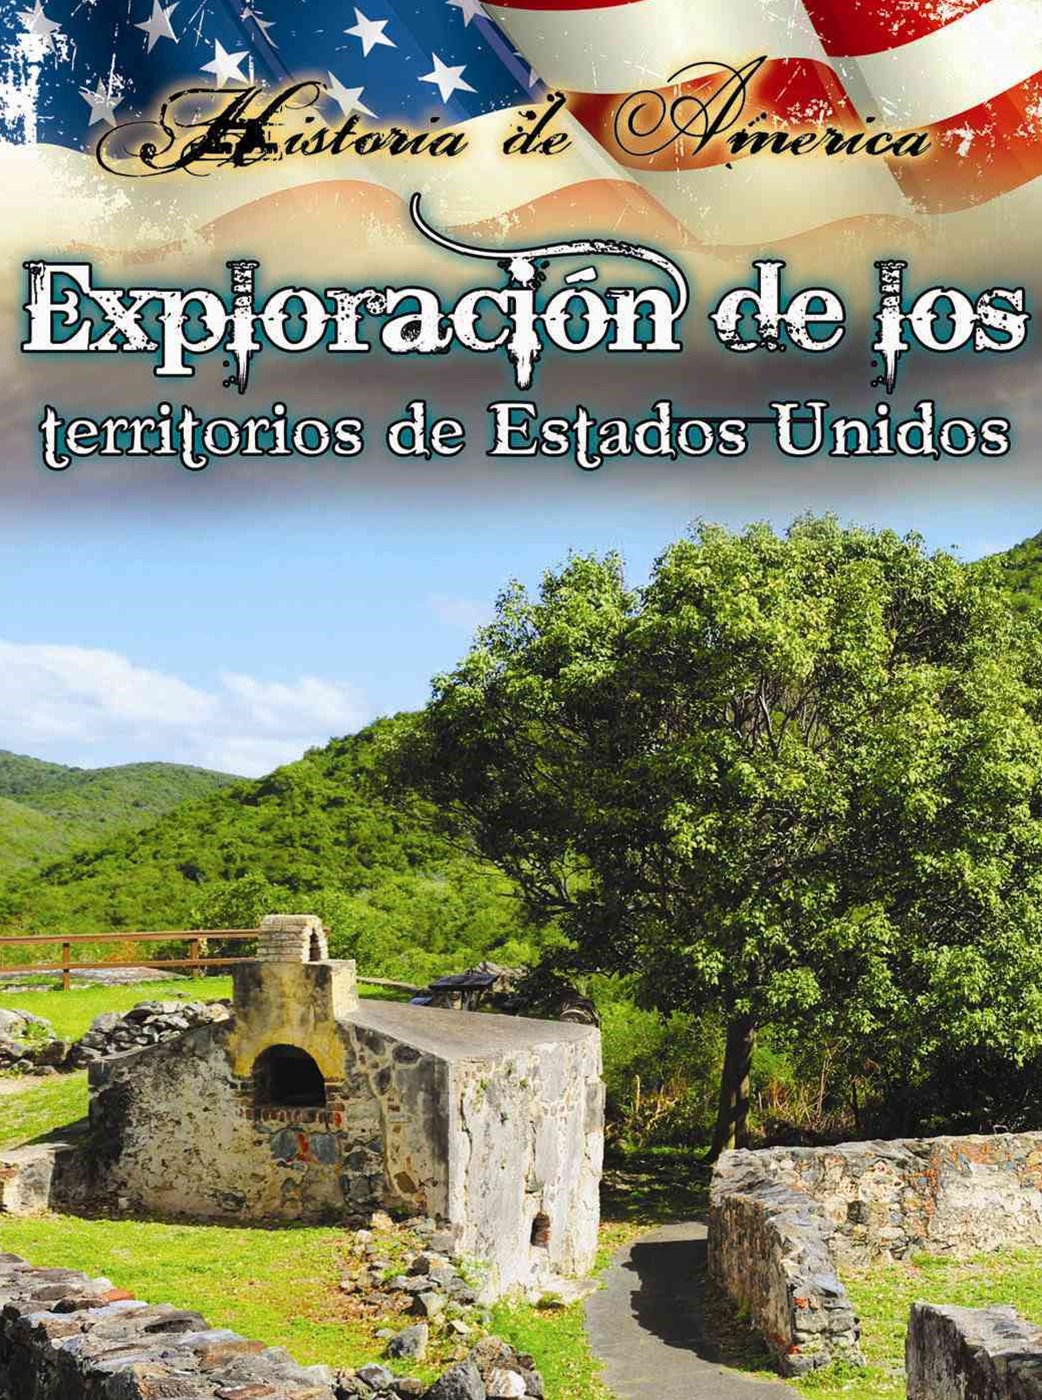 Explorac+¡on de los Territorios de Estados Unidos